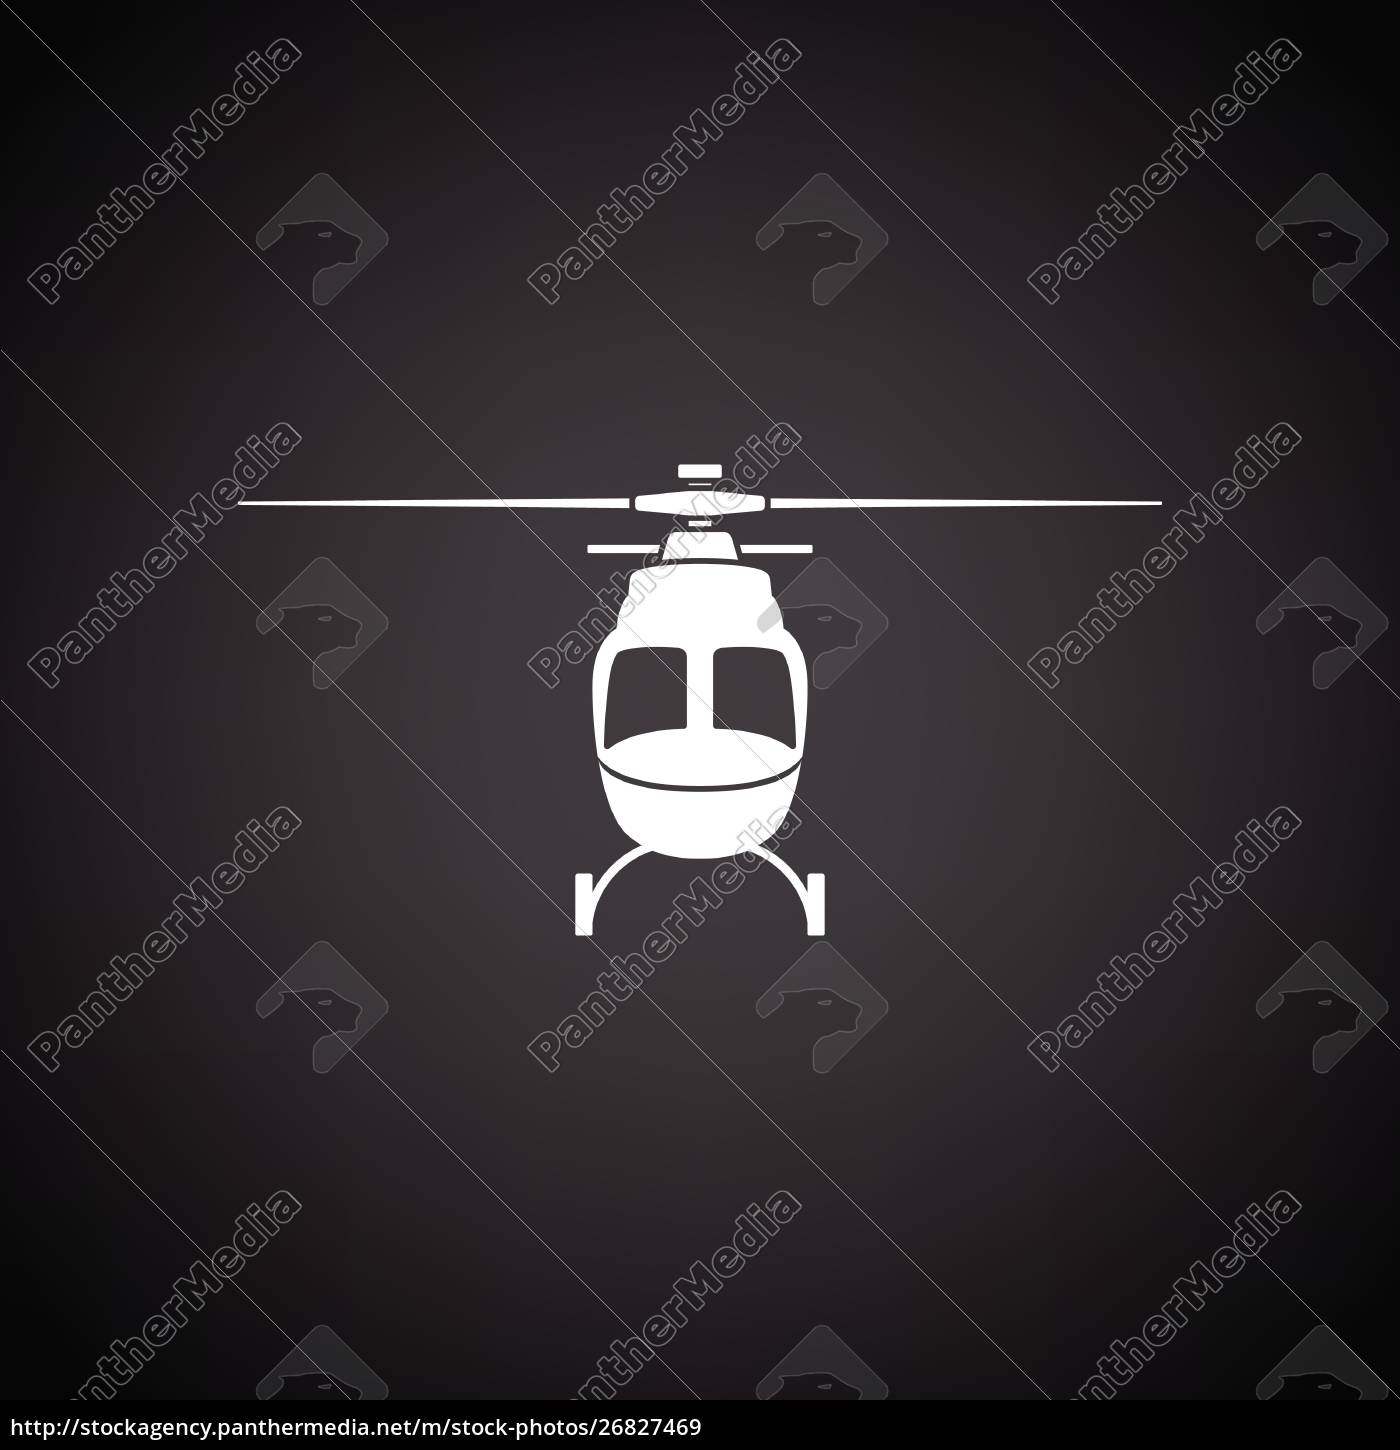 helicopter, icon, front, view - 26827469